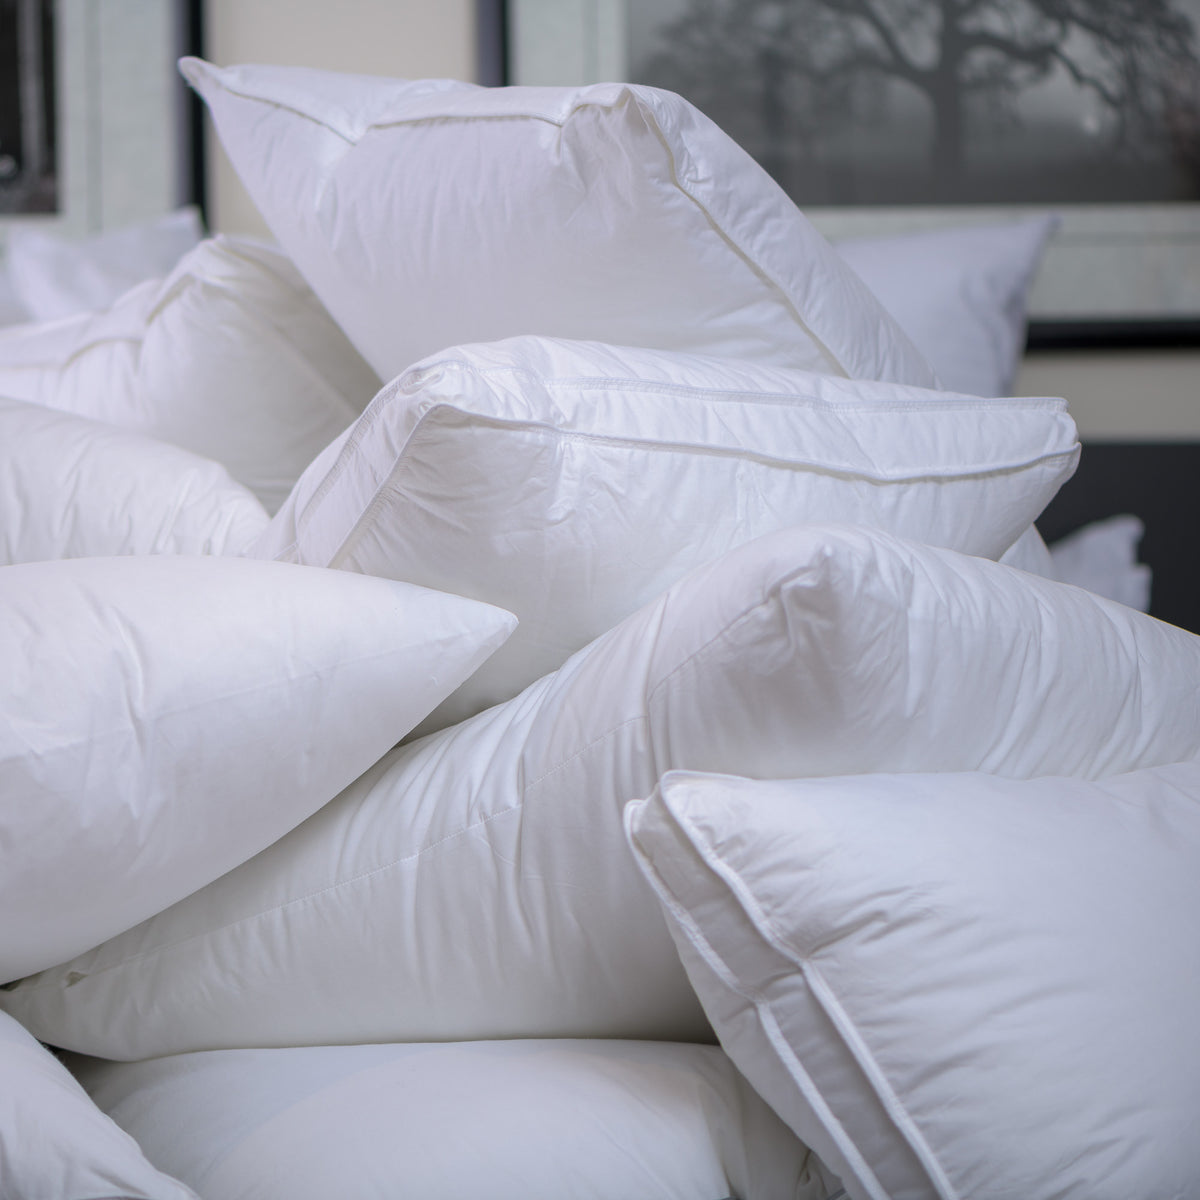 Pile White Hotel Pillows